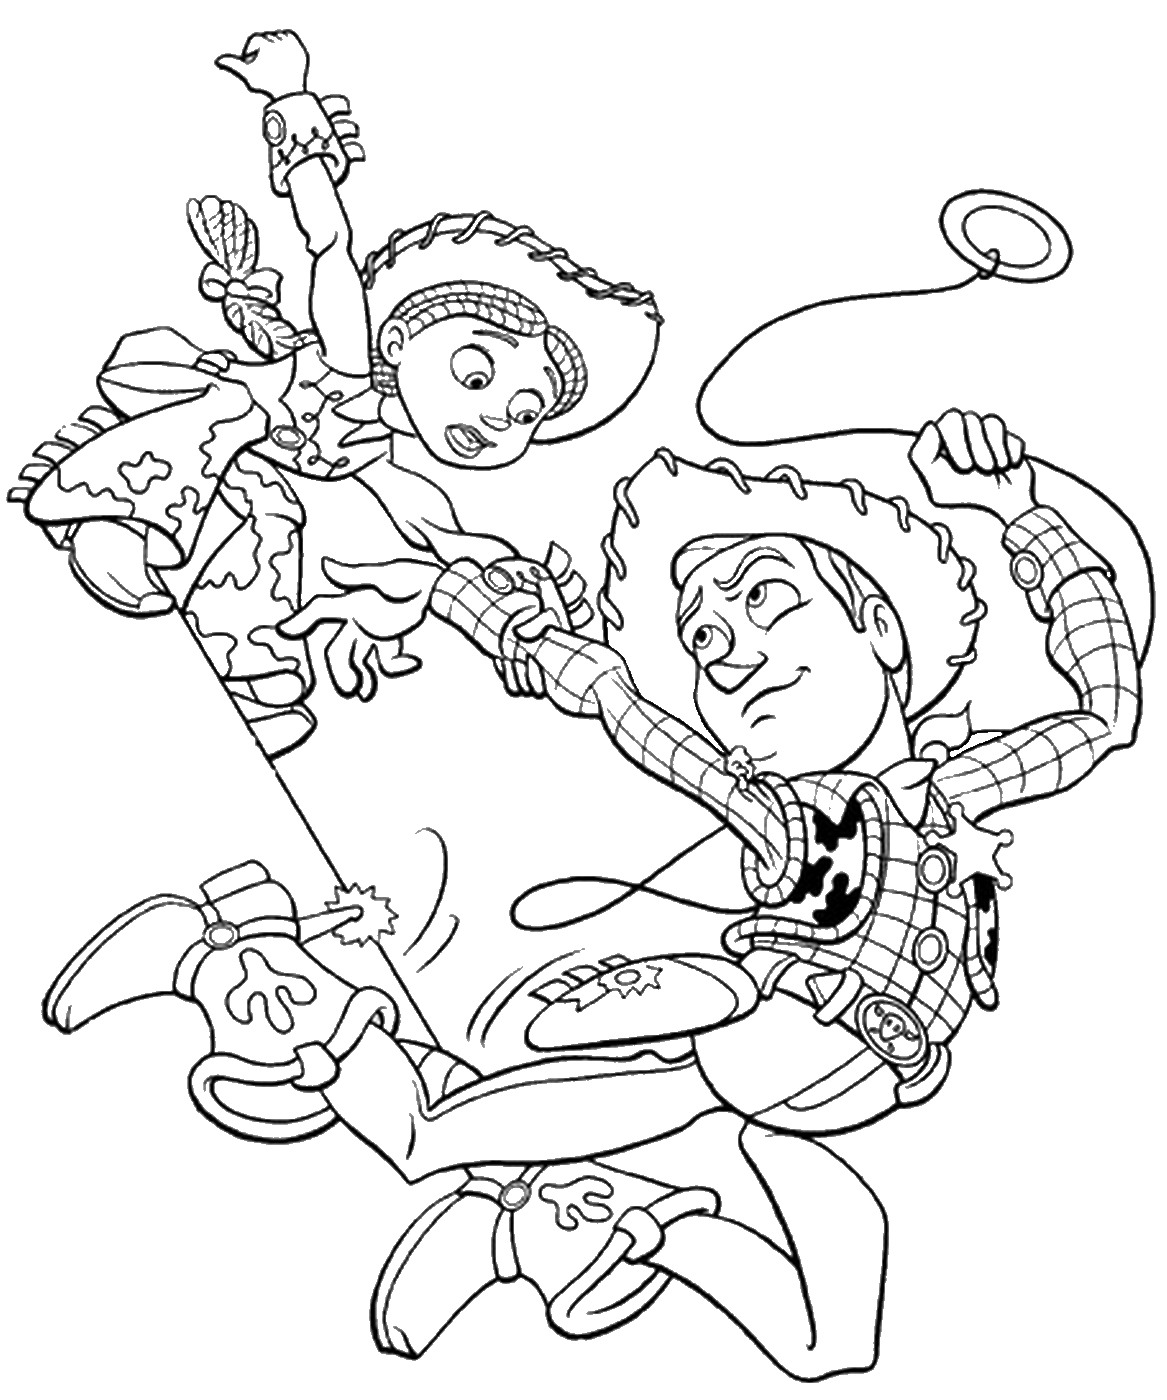 Woody and Jessie Action Toy Story Coloring Pages